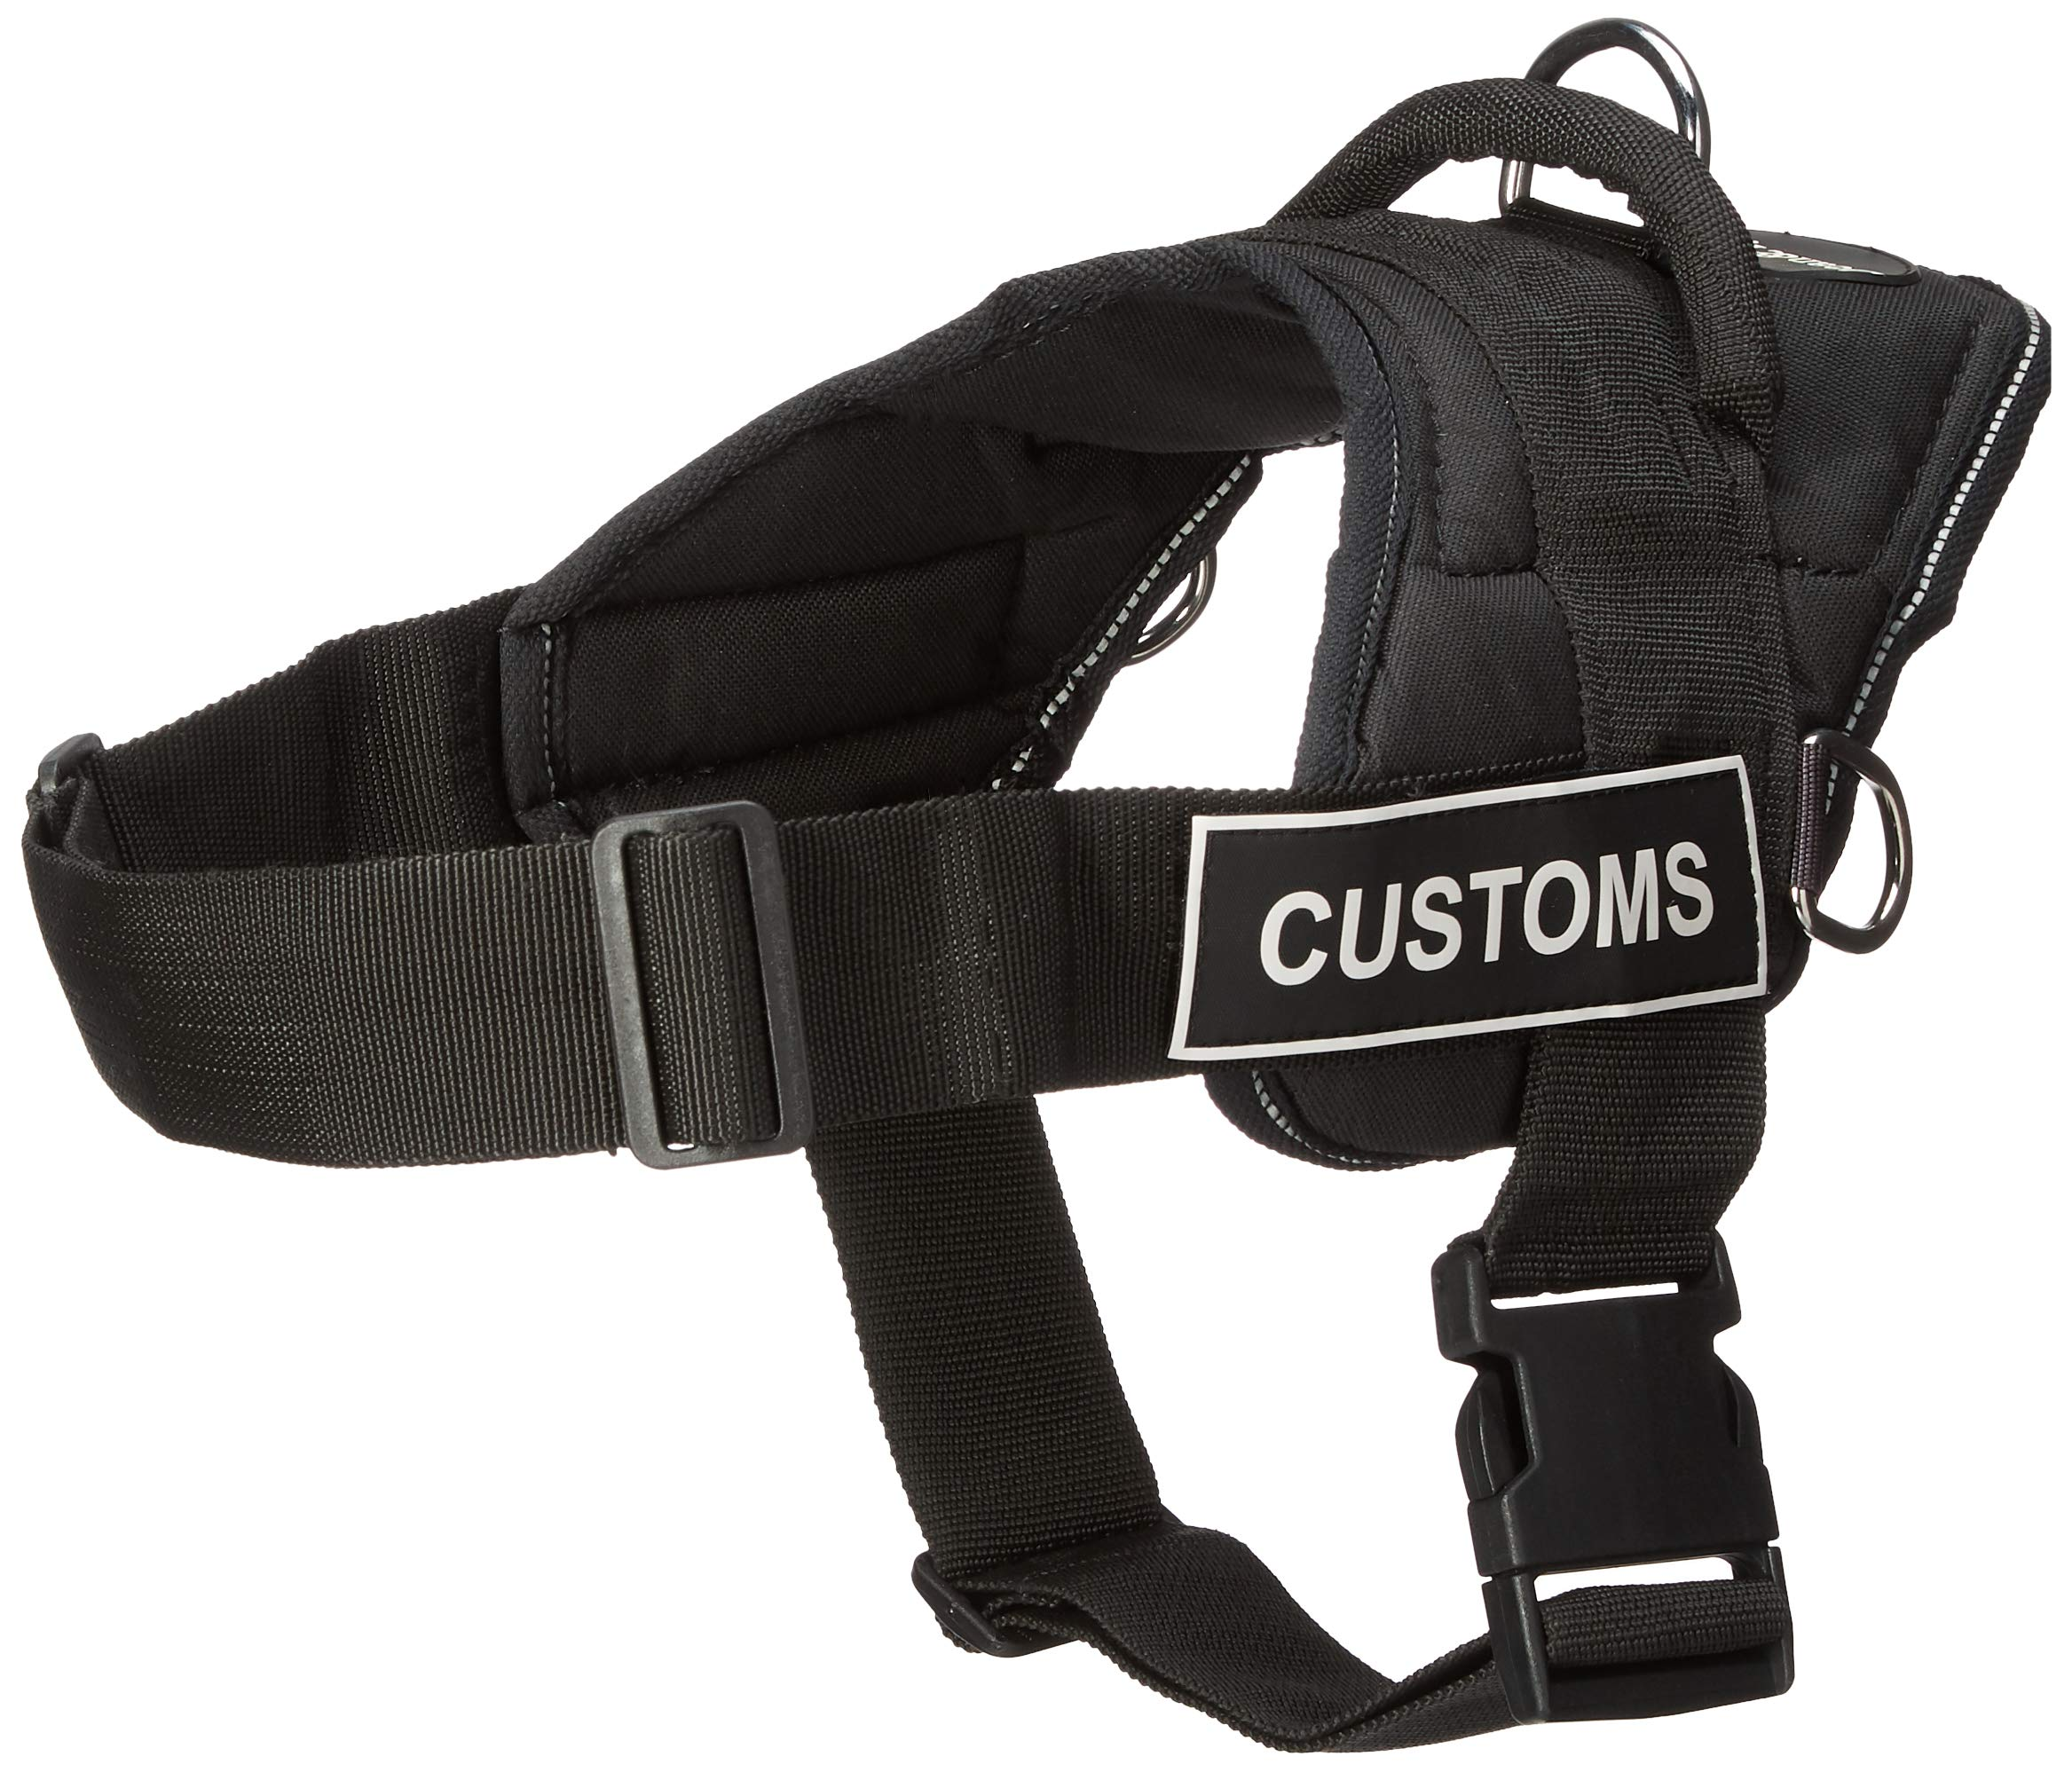 DT Fun Works Harness, Customs, Black With Reflective Trim, Medium - Fits Girth Size: 28-Inch to 34-Inch